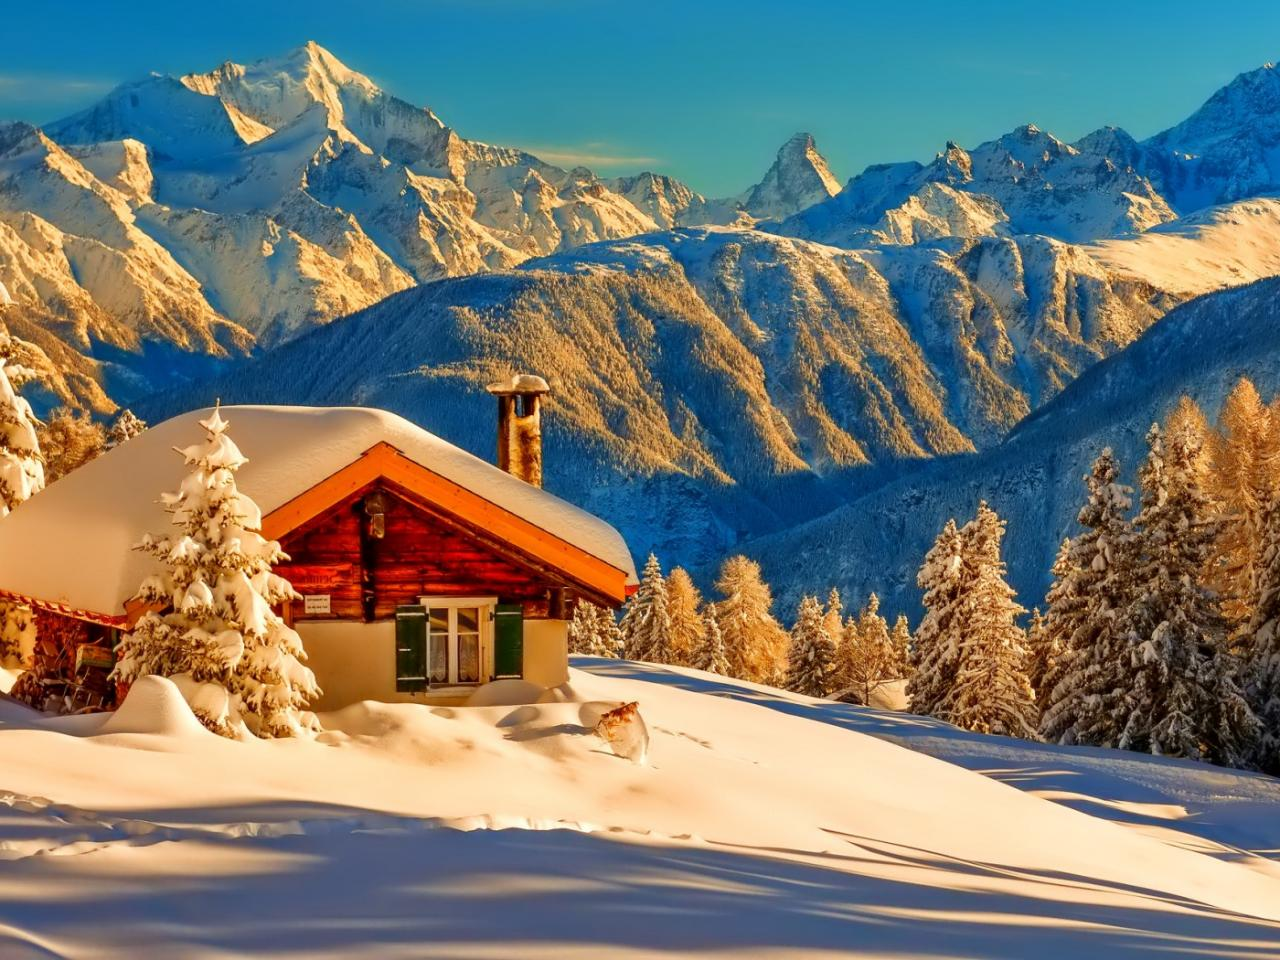 Snow Covered Log Hut in Mountains Cool Wallpapers 1280x960